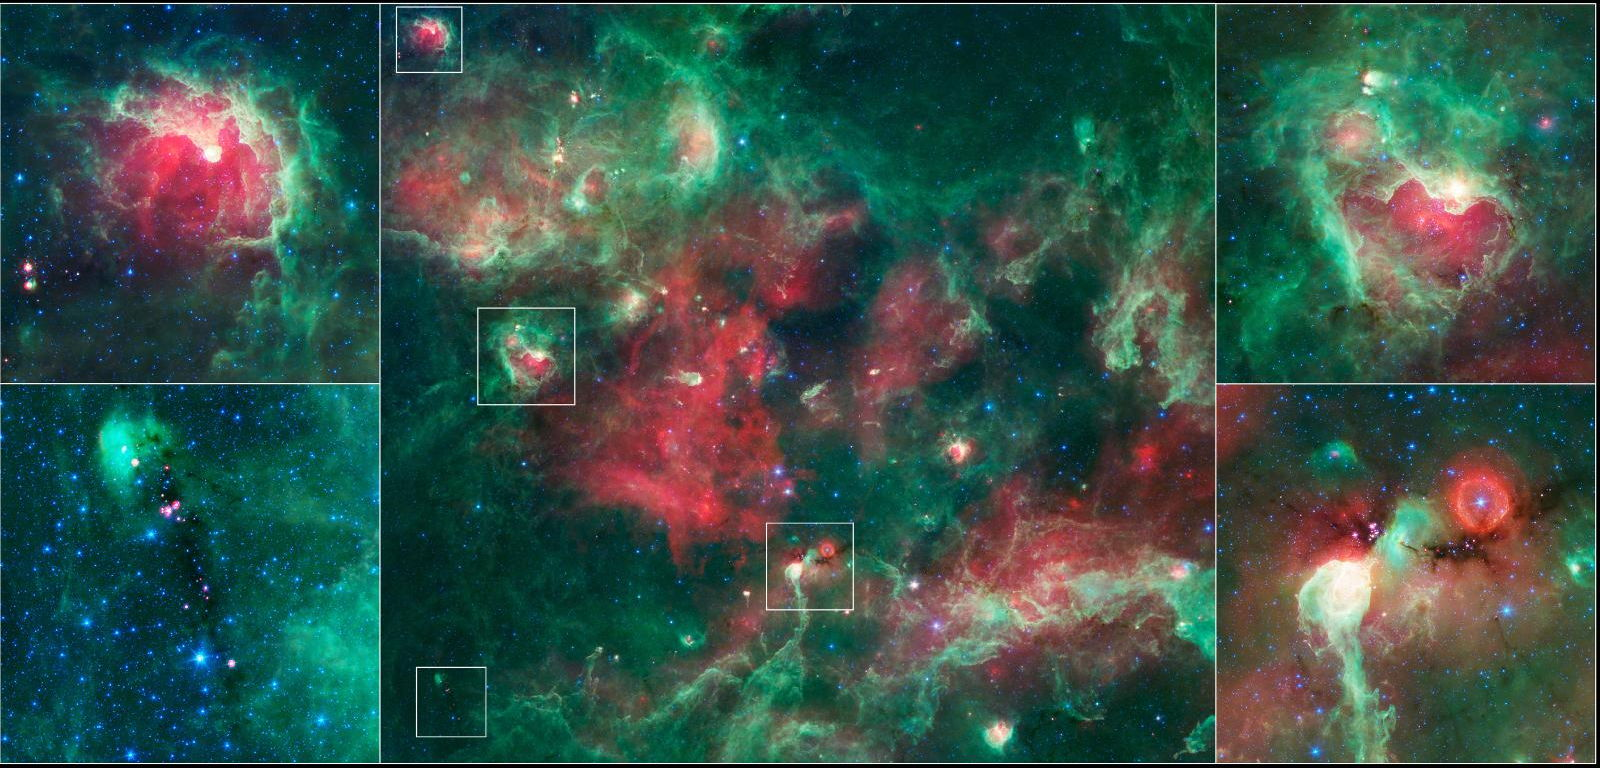 Goings On Around Star-forming Towns